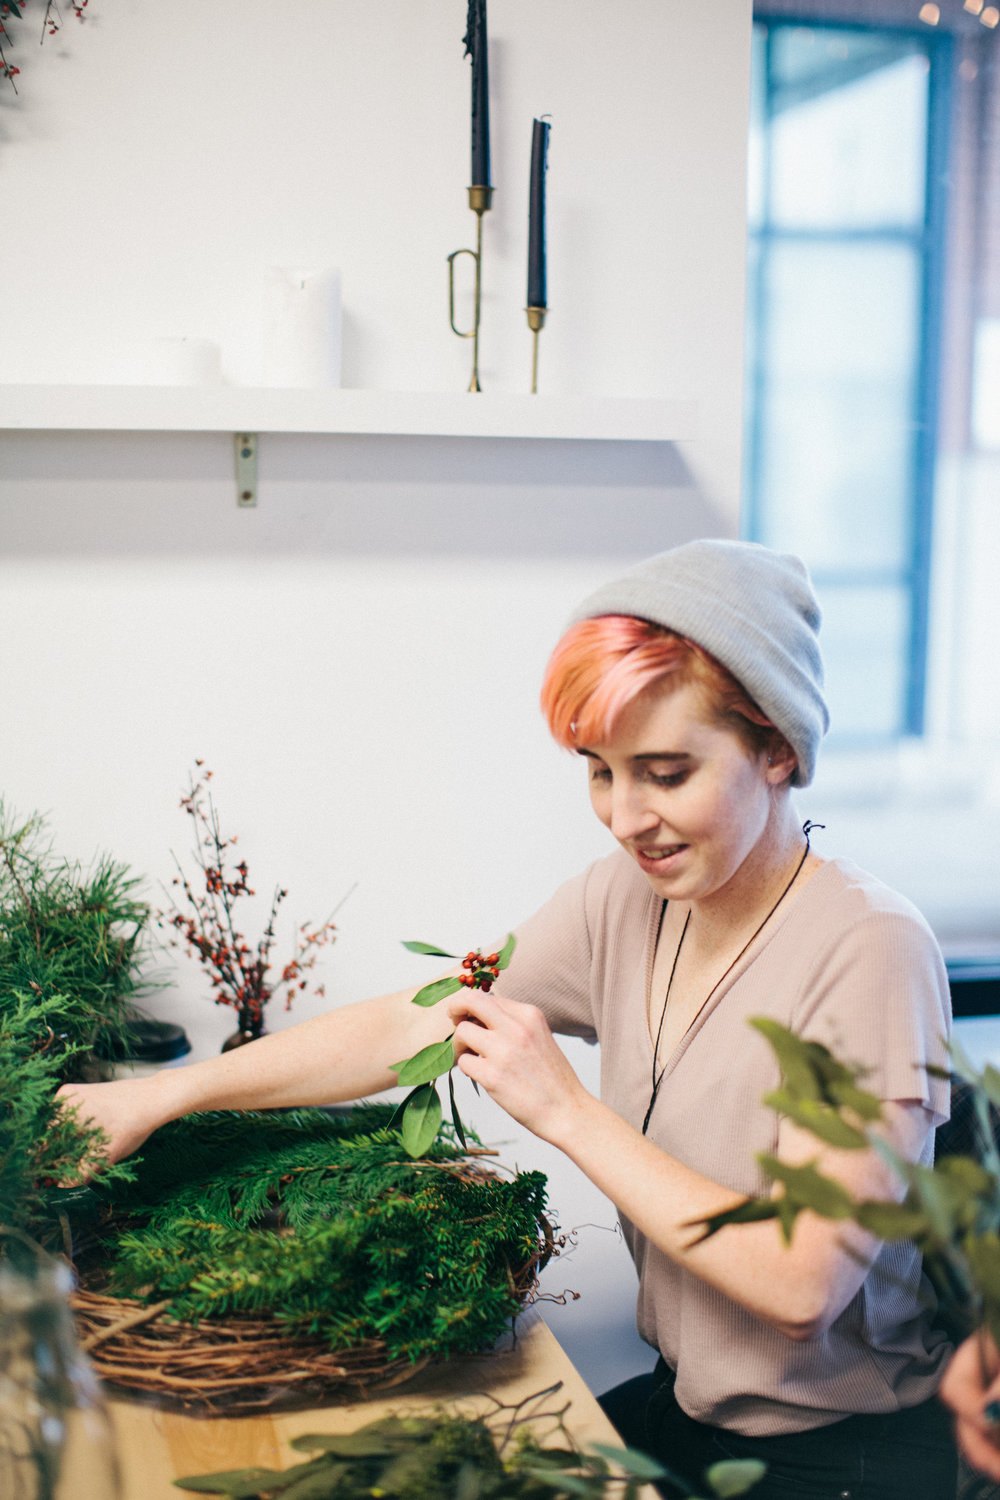 I am so thankful for this workshop because I was given a moment to slow down, be present, create, and connect with those around me. Asheville Folk Holiday Wreath Workshop by Lyndsey Parham